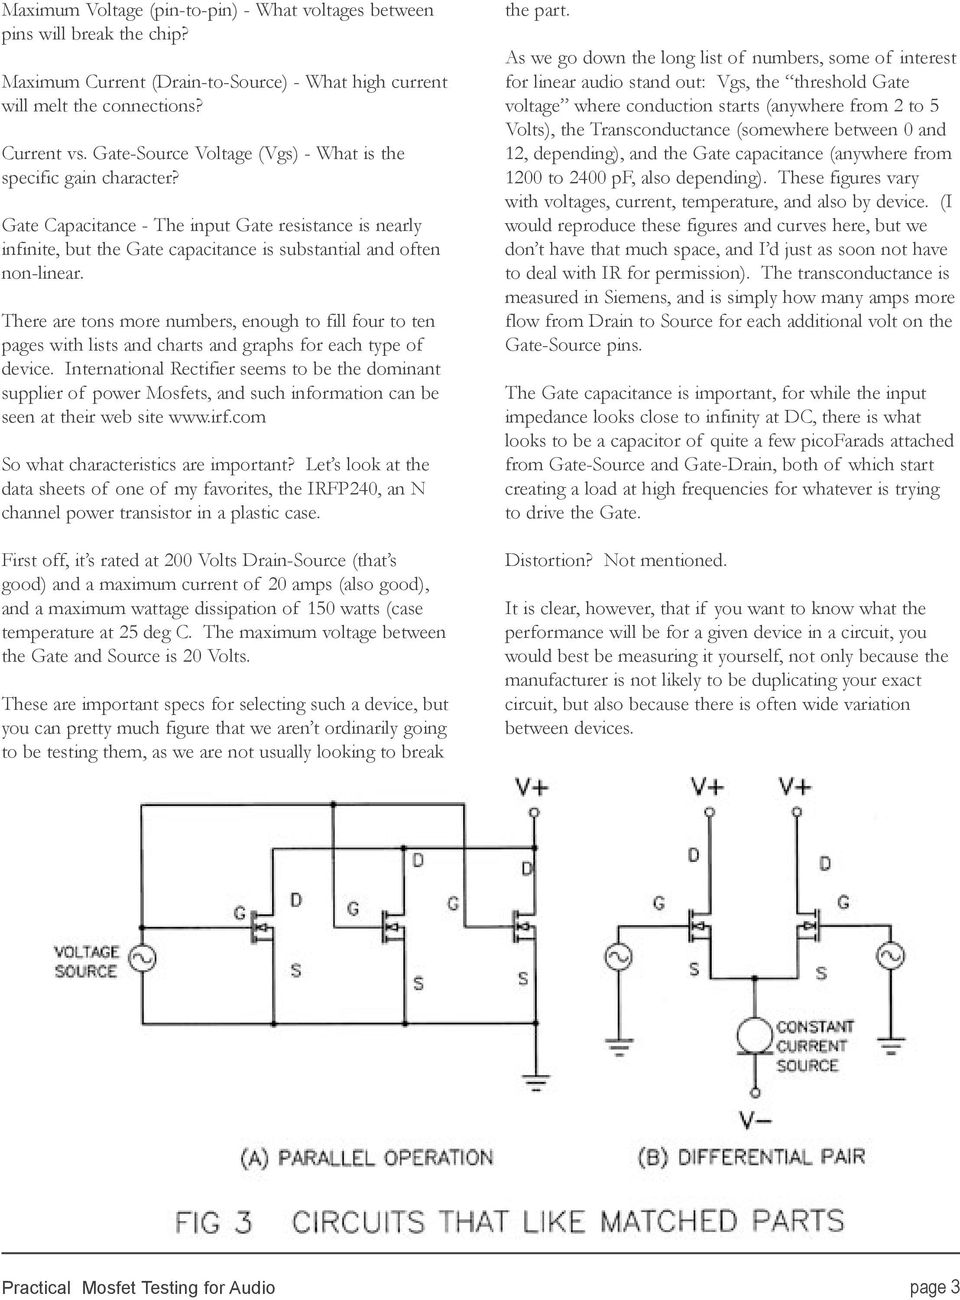 Practical Mosfet Testing For Audio Pdf Class D Amplifier Circuit Lm1036 Tone Controlled Irs2092 There Are Tons More Numbers Enough To Fill Four Ten Pages With Lists And